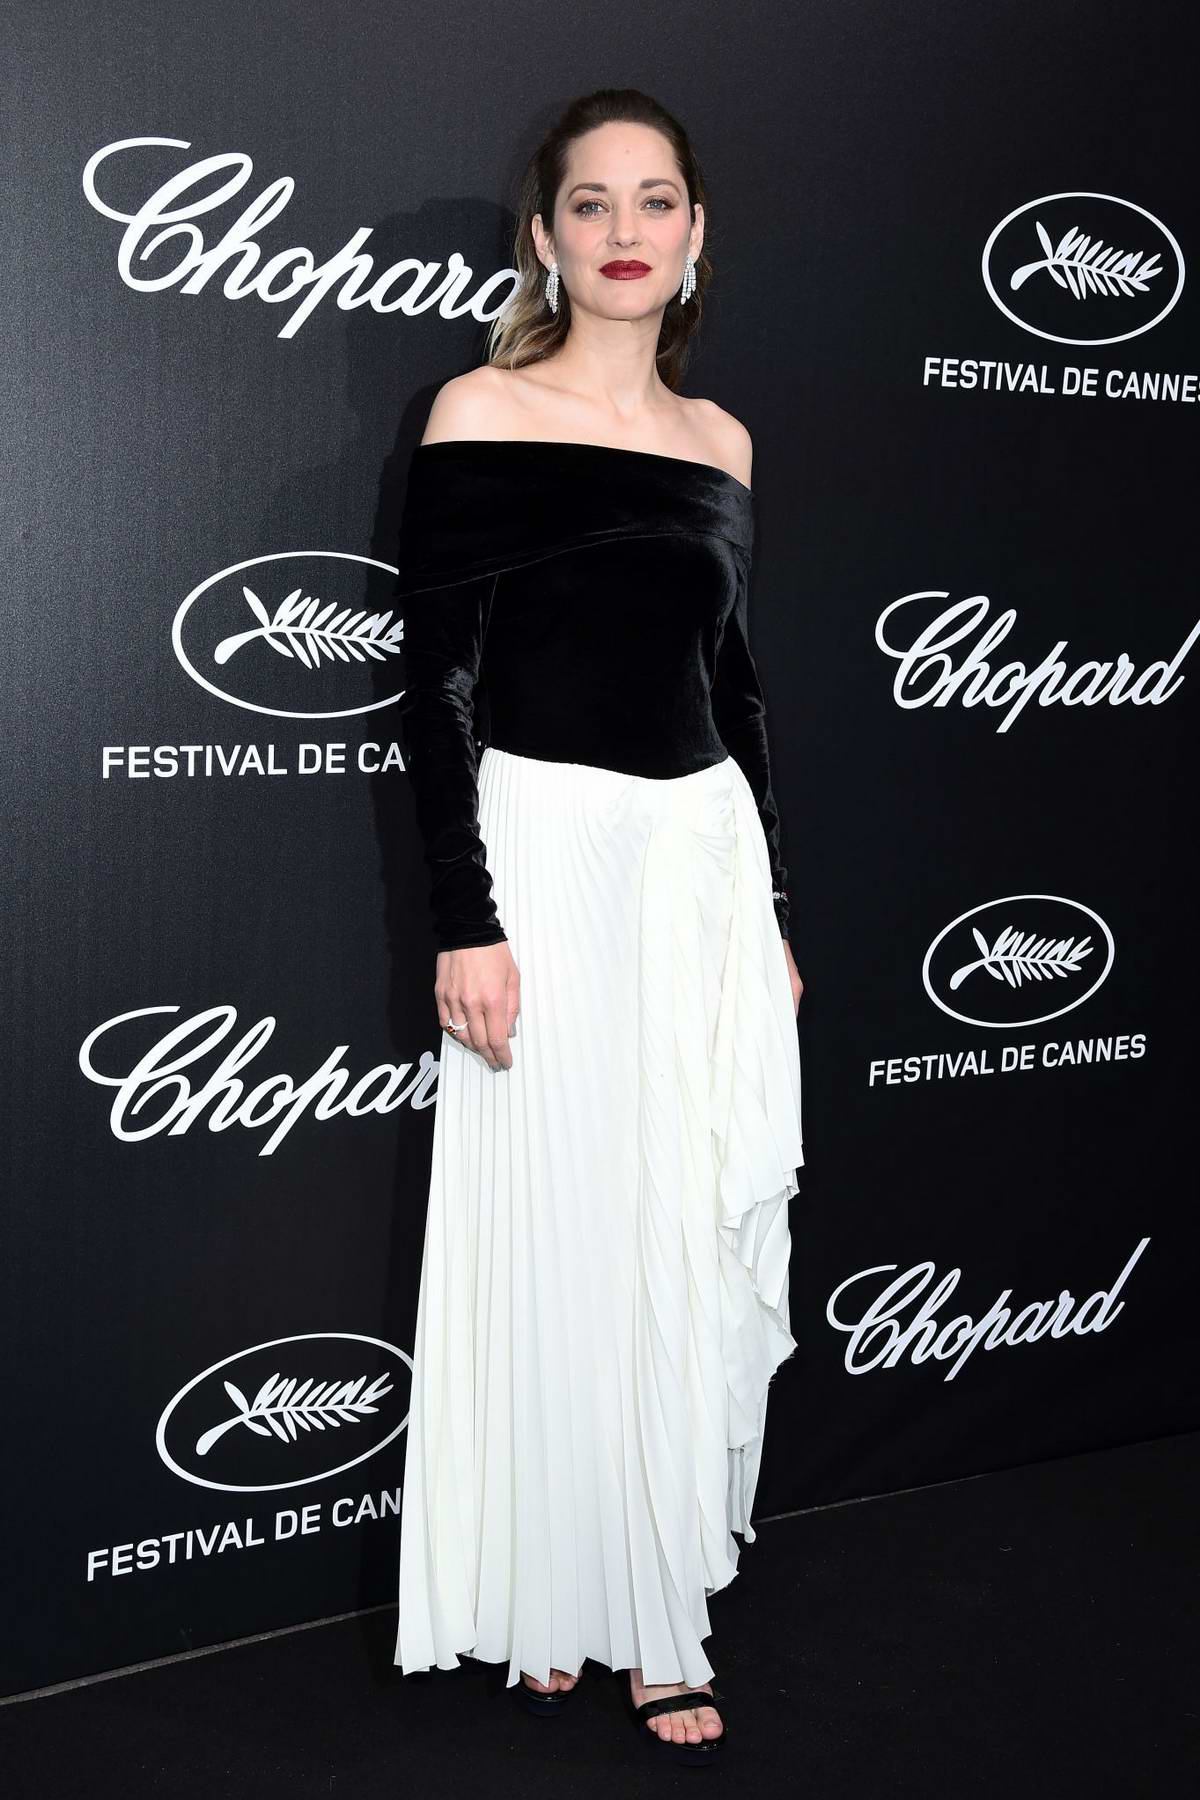 Marion Cotillard attends the official Trophee Chopard Dinner Photocall during the 72nd annual Cannes Film Festival in Cannes, France